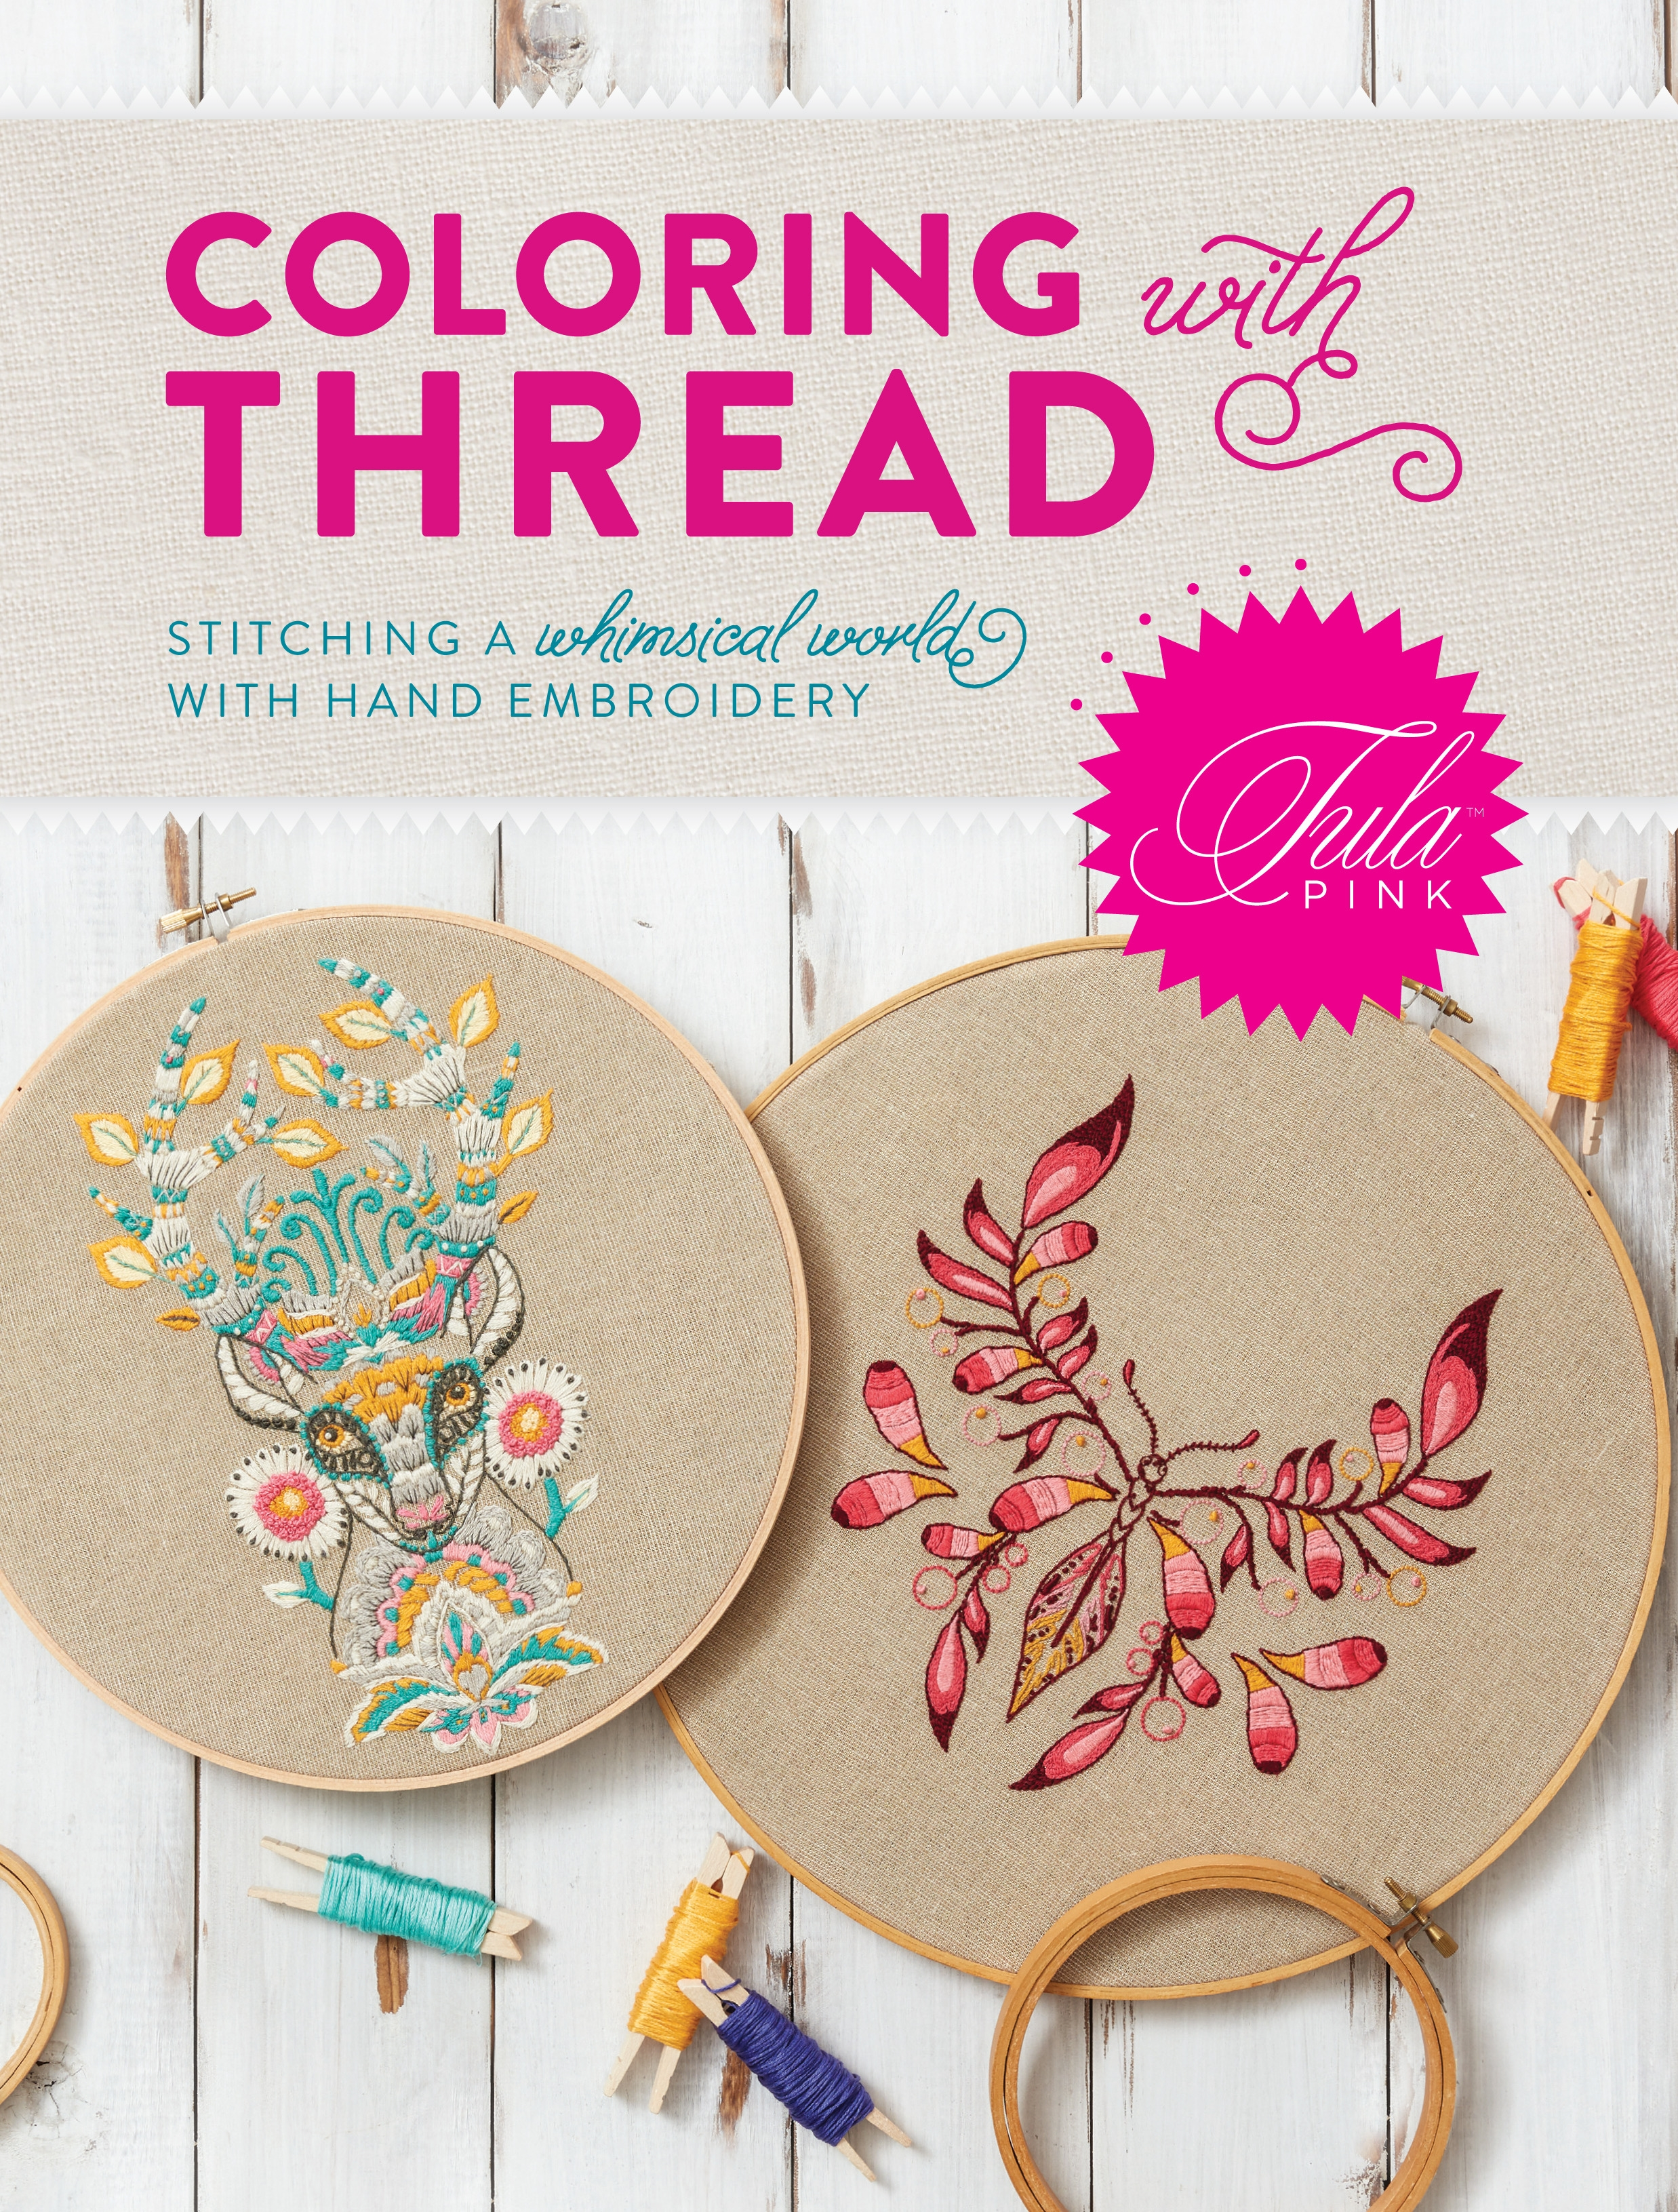 Tula Pink Coloring with Thread by Tula Pink   Penguin Books Australia